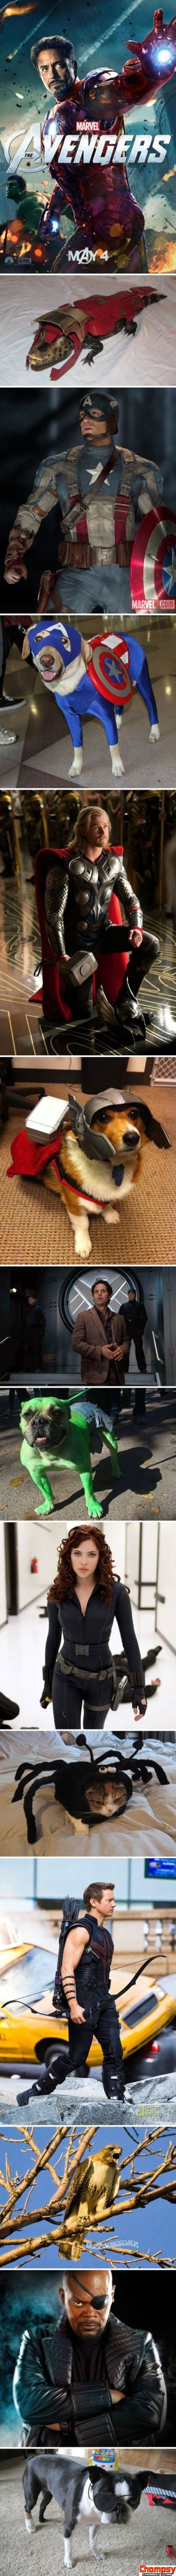 Avengers Cast as Animals